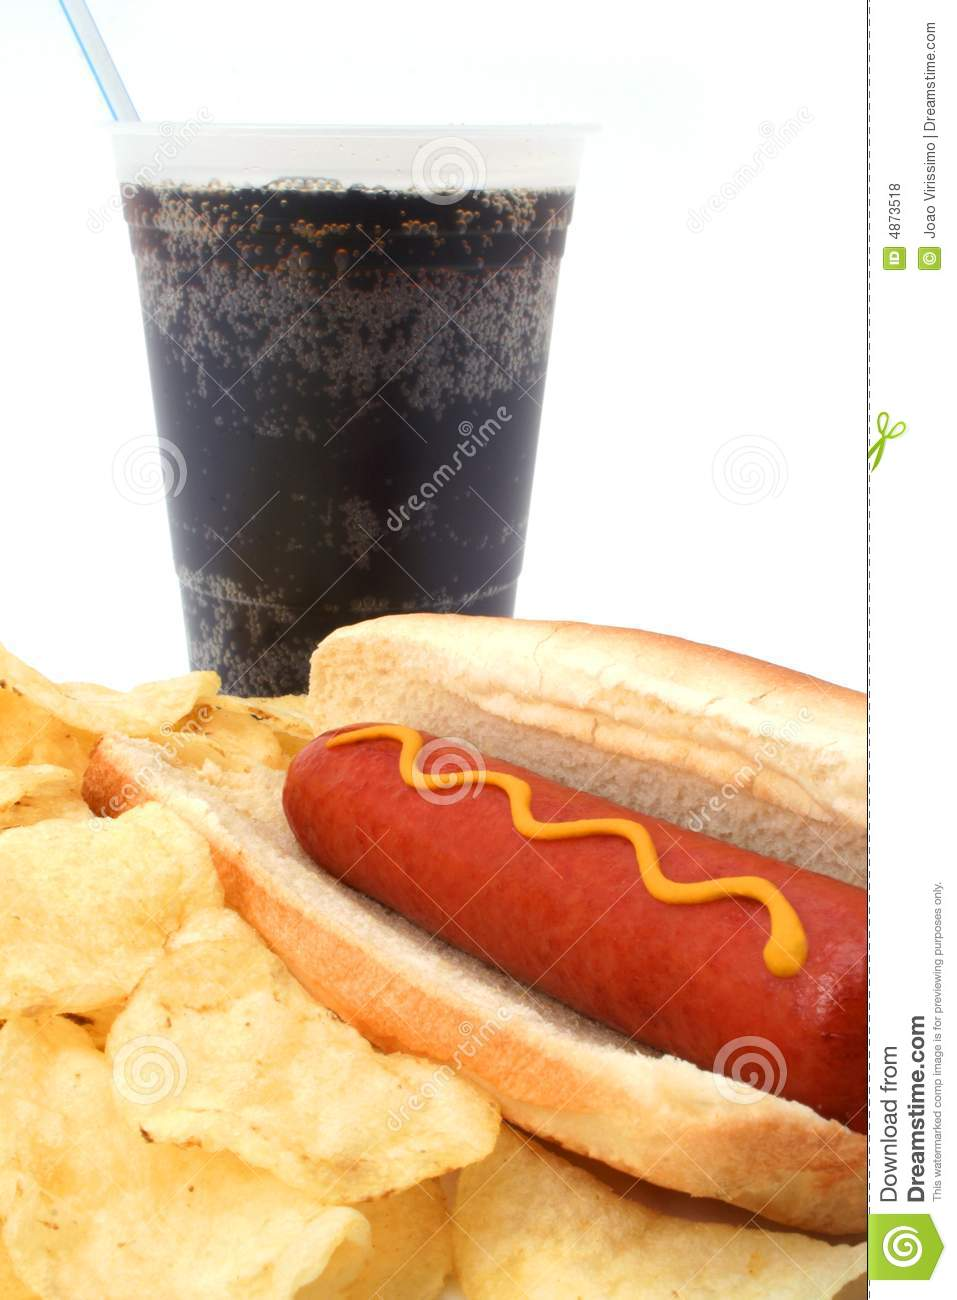 Hot Hog Fast Food Meal With Potato Chips And Soda Stock Photo